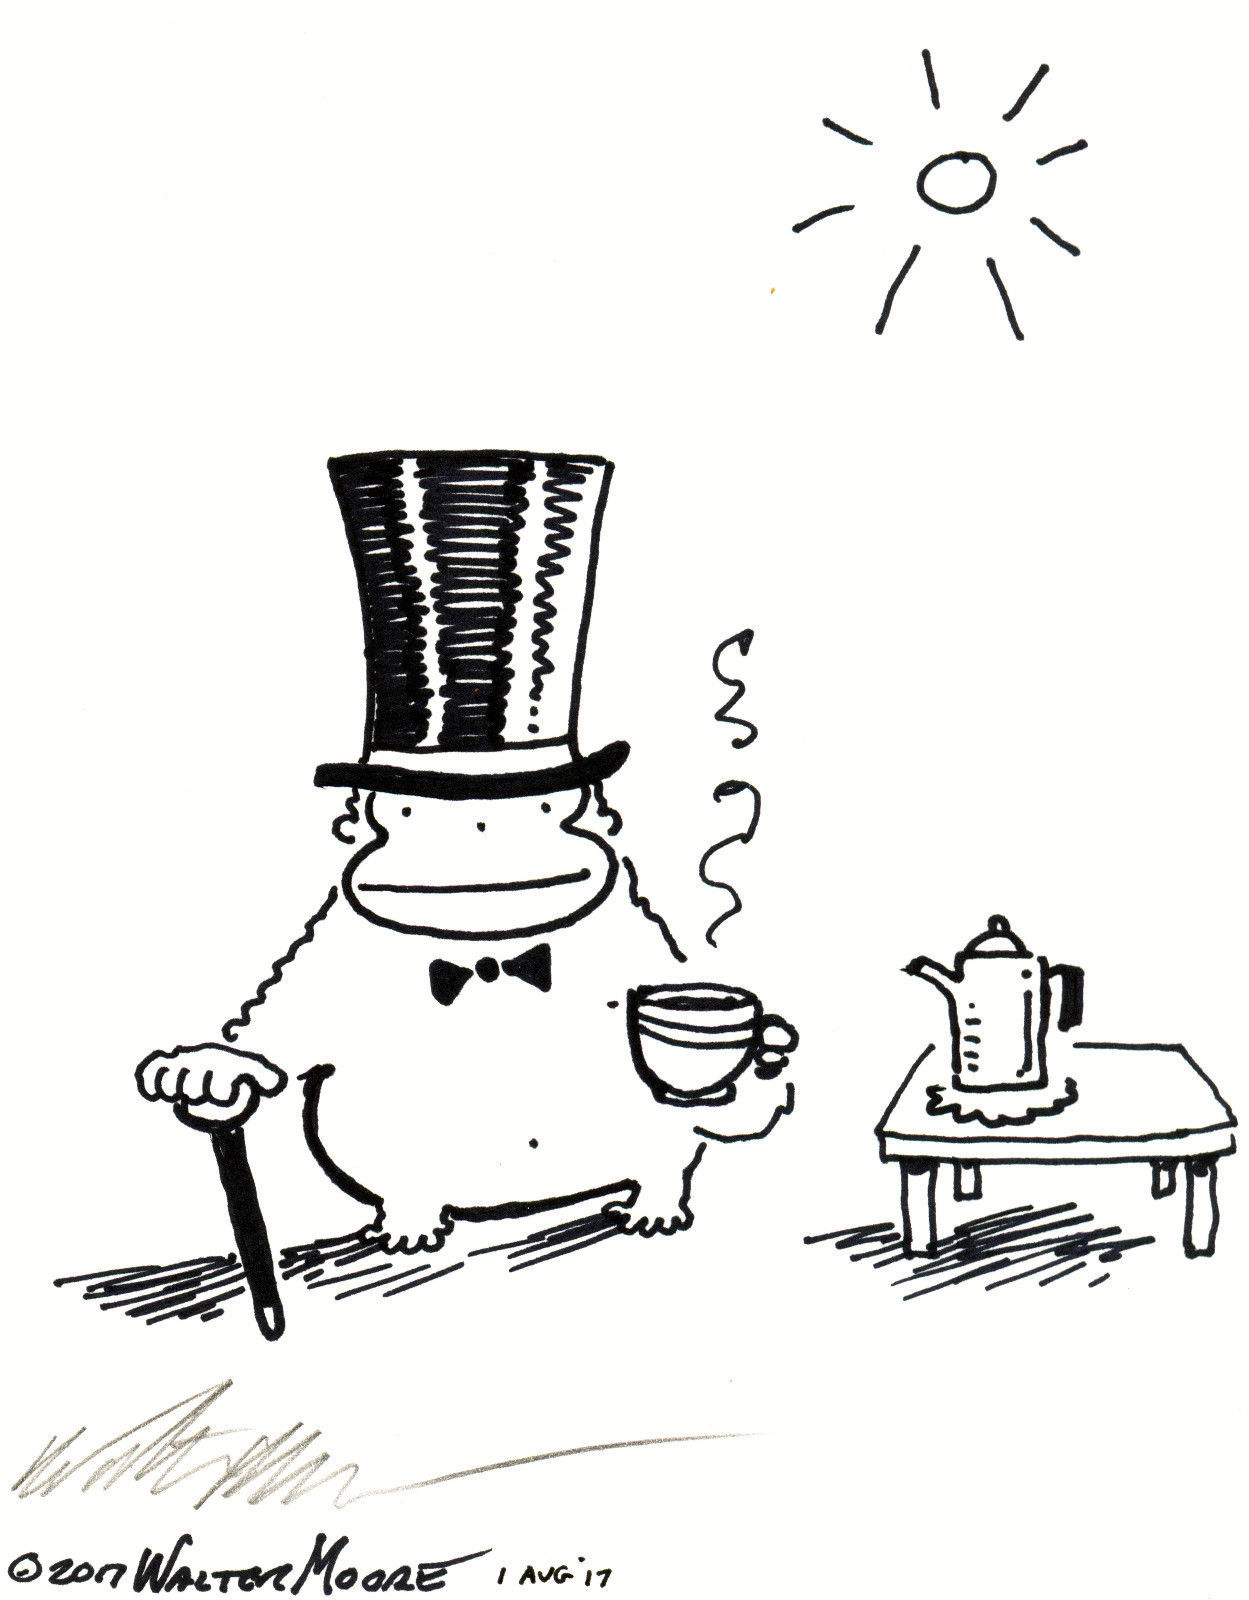 Top Hat Ape Drinks Cup of Tea. Original Signed Cartoon by Walter Moore